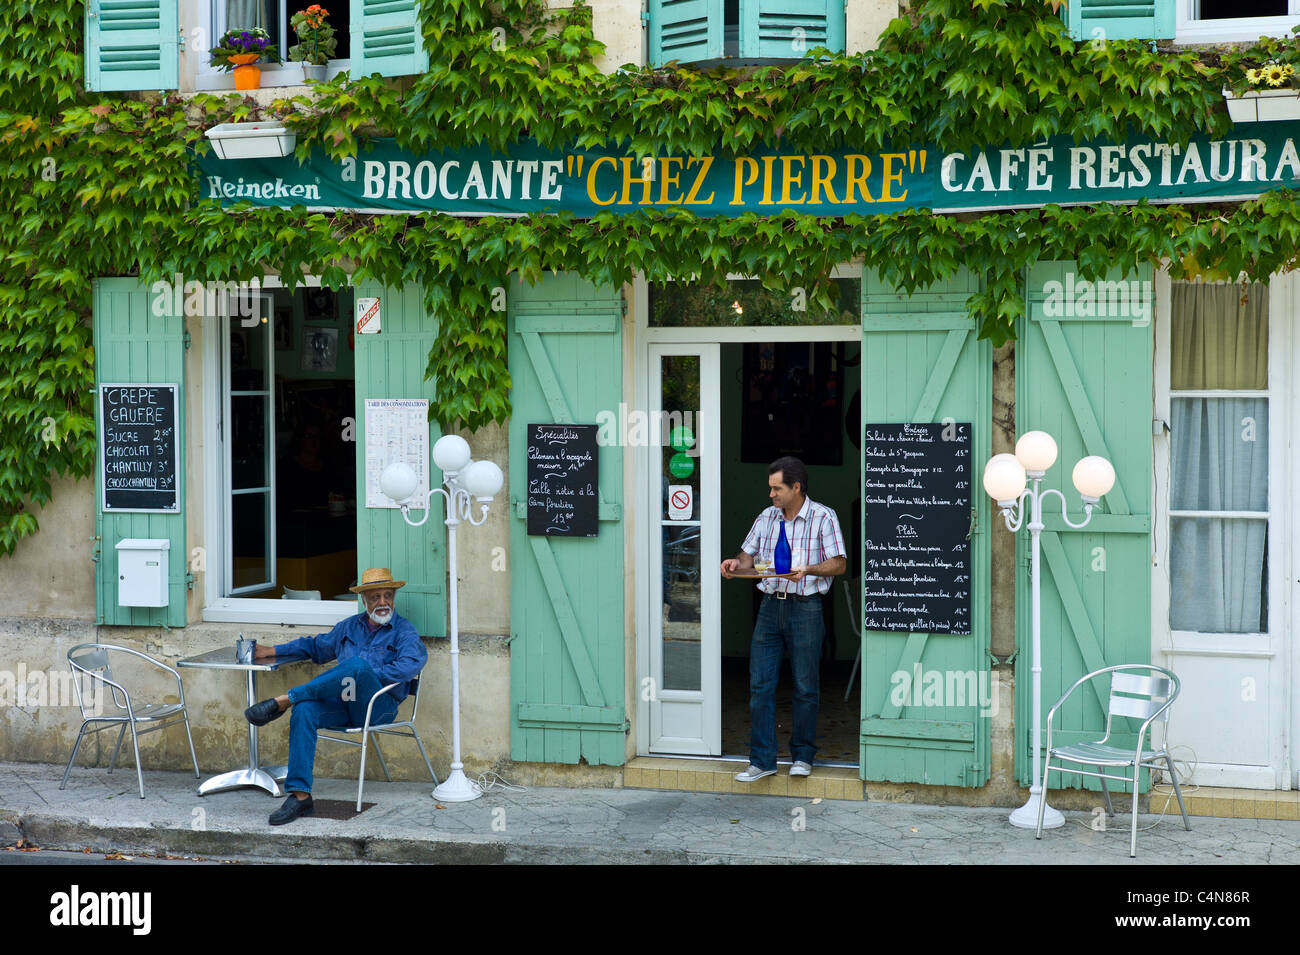 Waiter serves customer Pastis at traditional French Cafe Chez Pierre in Castelmoron d'Albret in Bordeaux region, - Stock Image